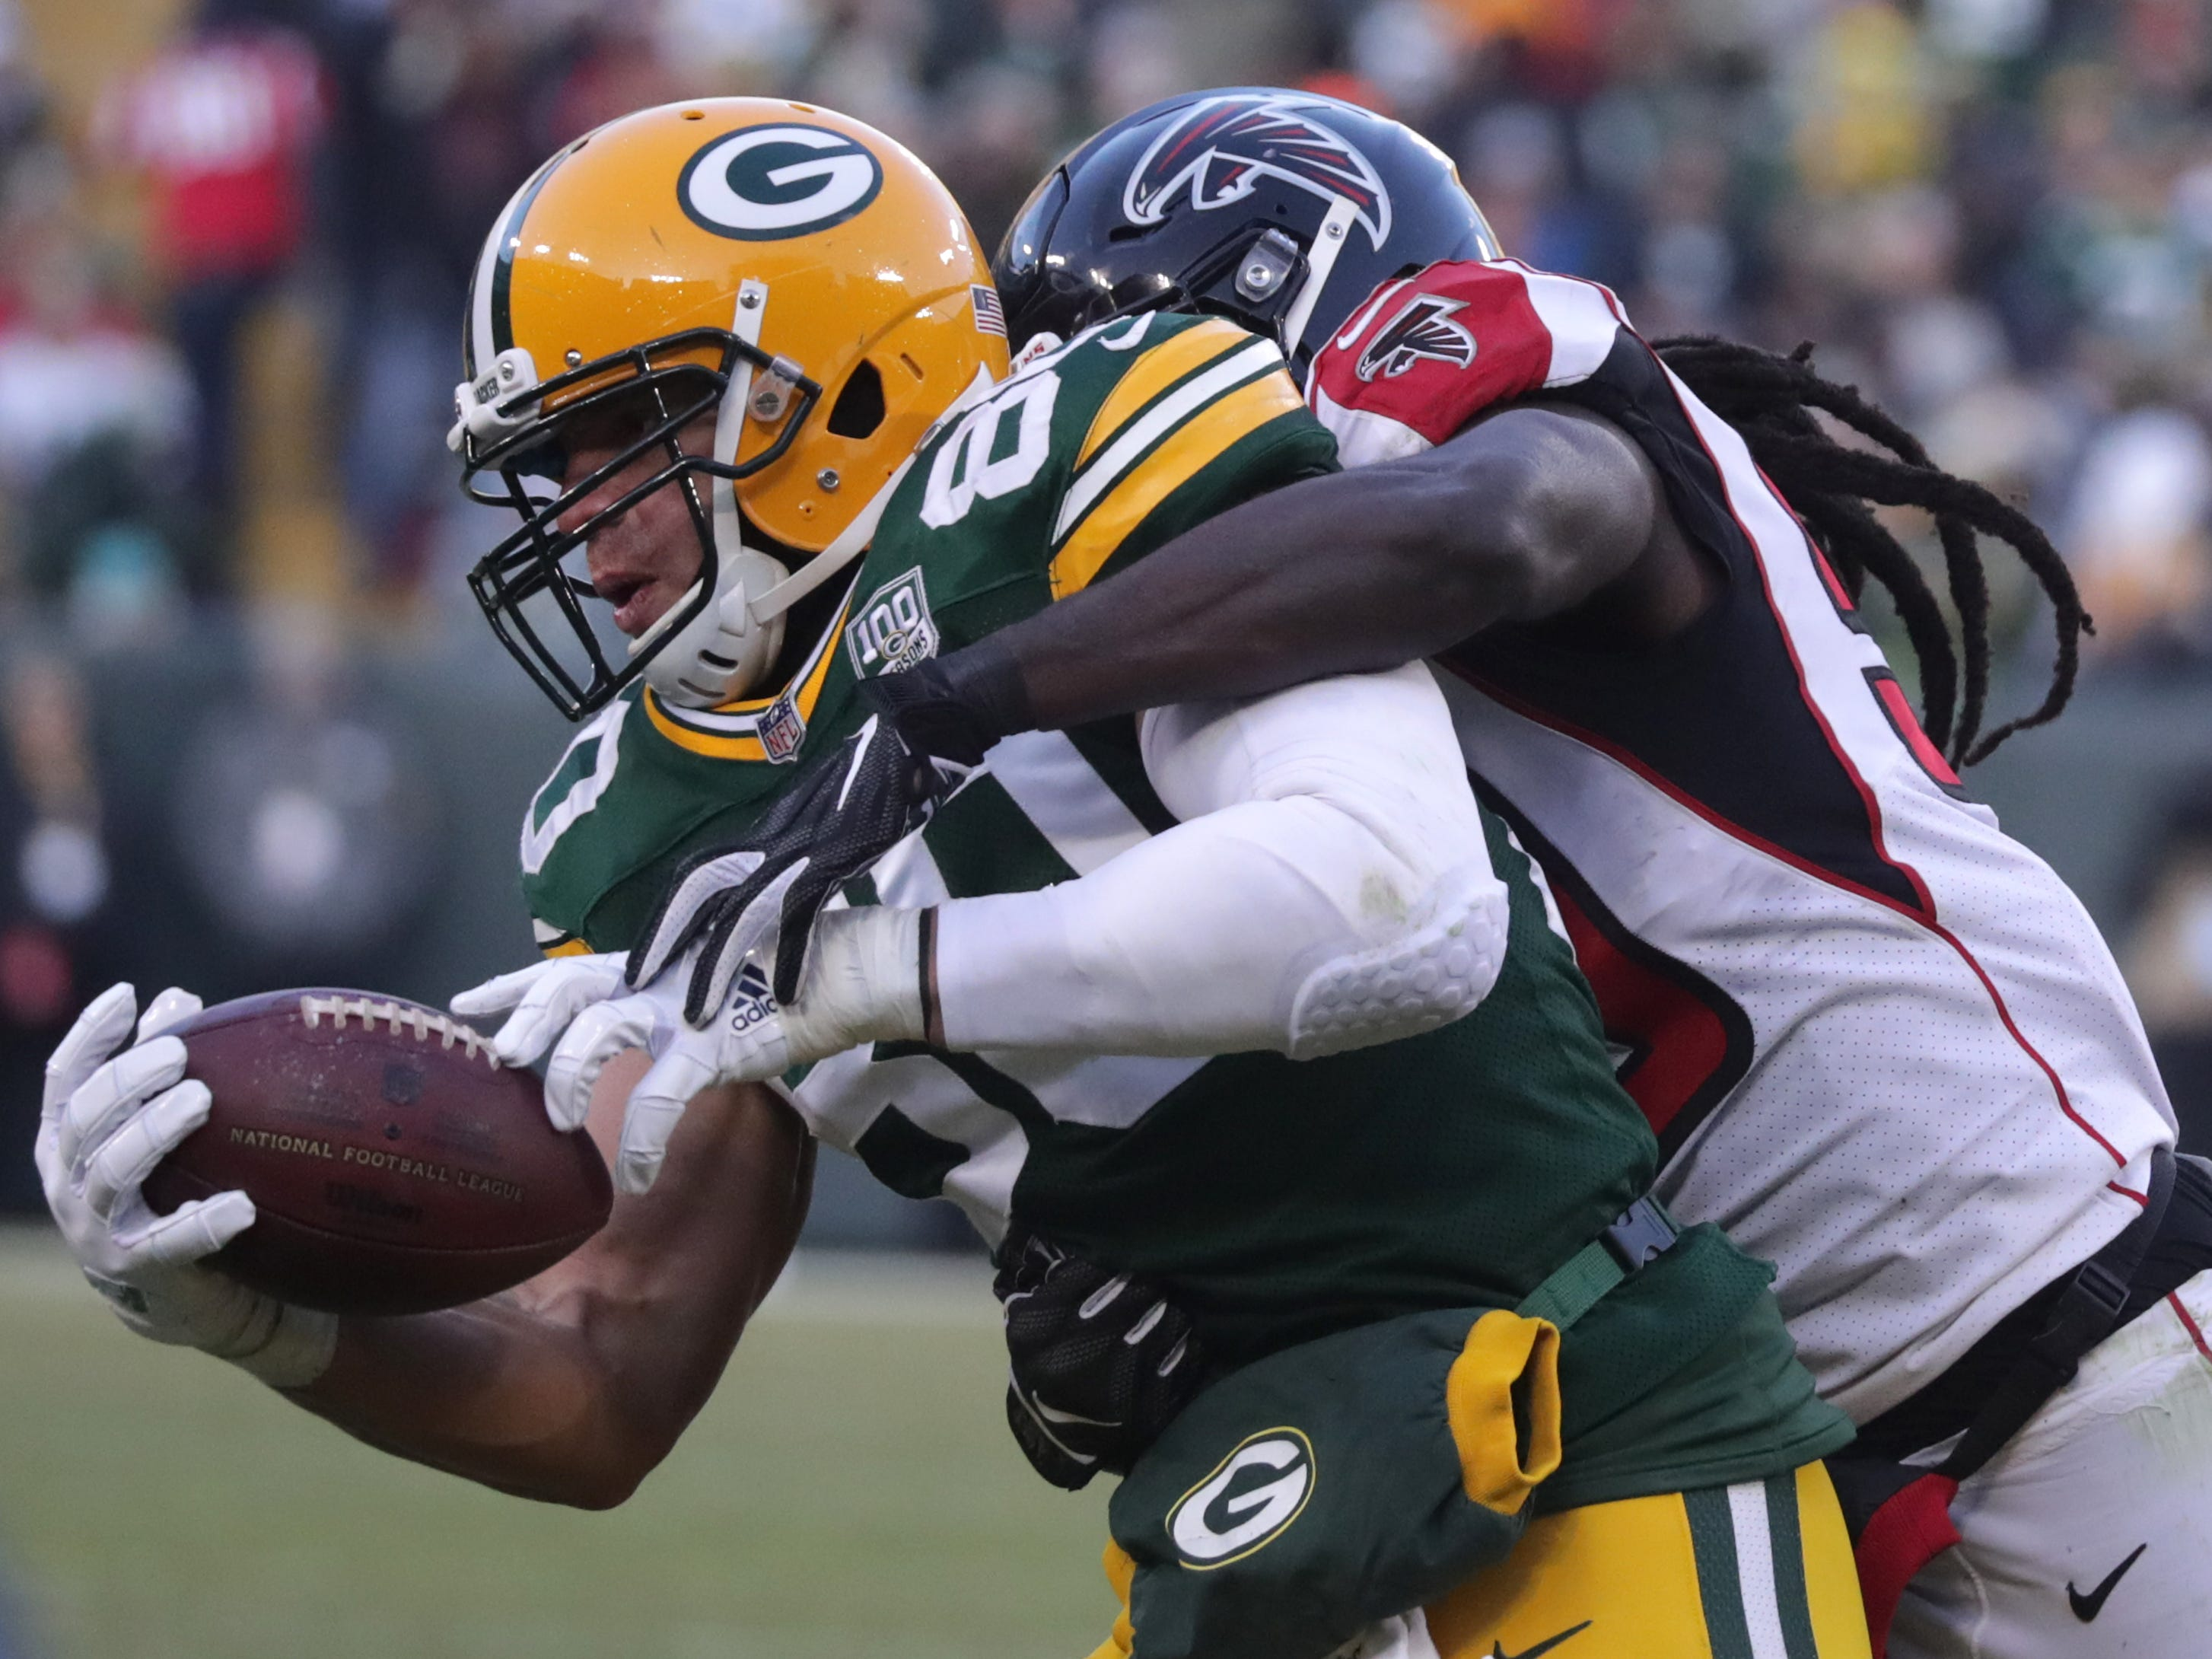 Green Bay Packers tight end Jimmy Graham makes a catch under the defense of Atlanta Falcons outside linebacker De'Vondre Campbell during their football game on Sunday, December 9, 2018, at Lambeau Field in Green Bay, Wis. Wm. Glasheen/USA TODAY NETWORK-Wisconsin.